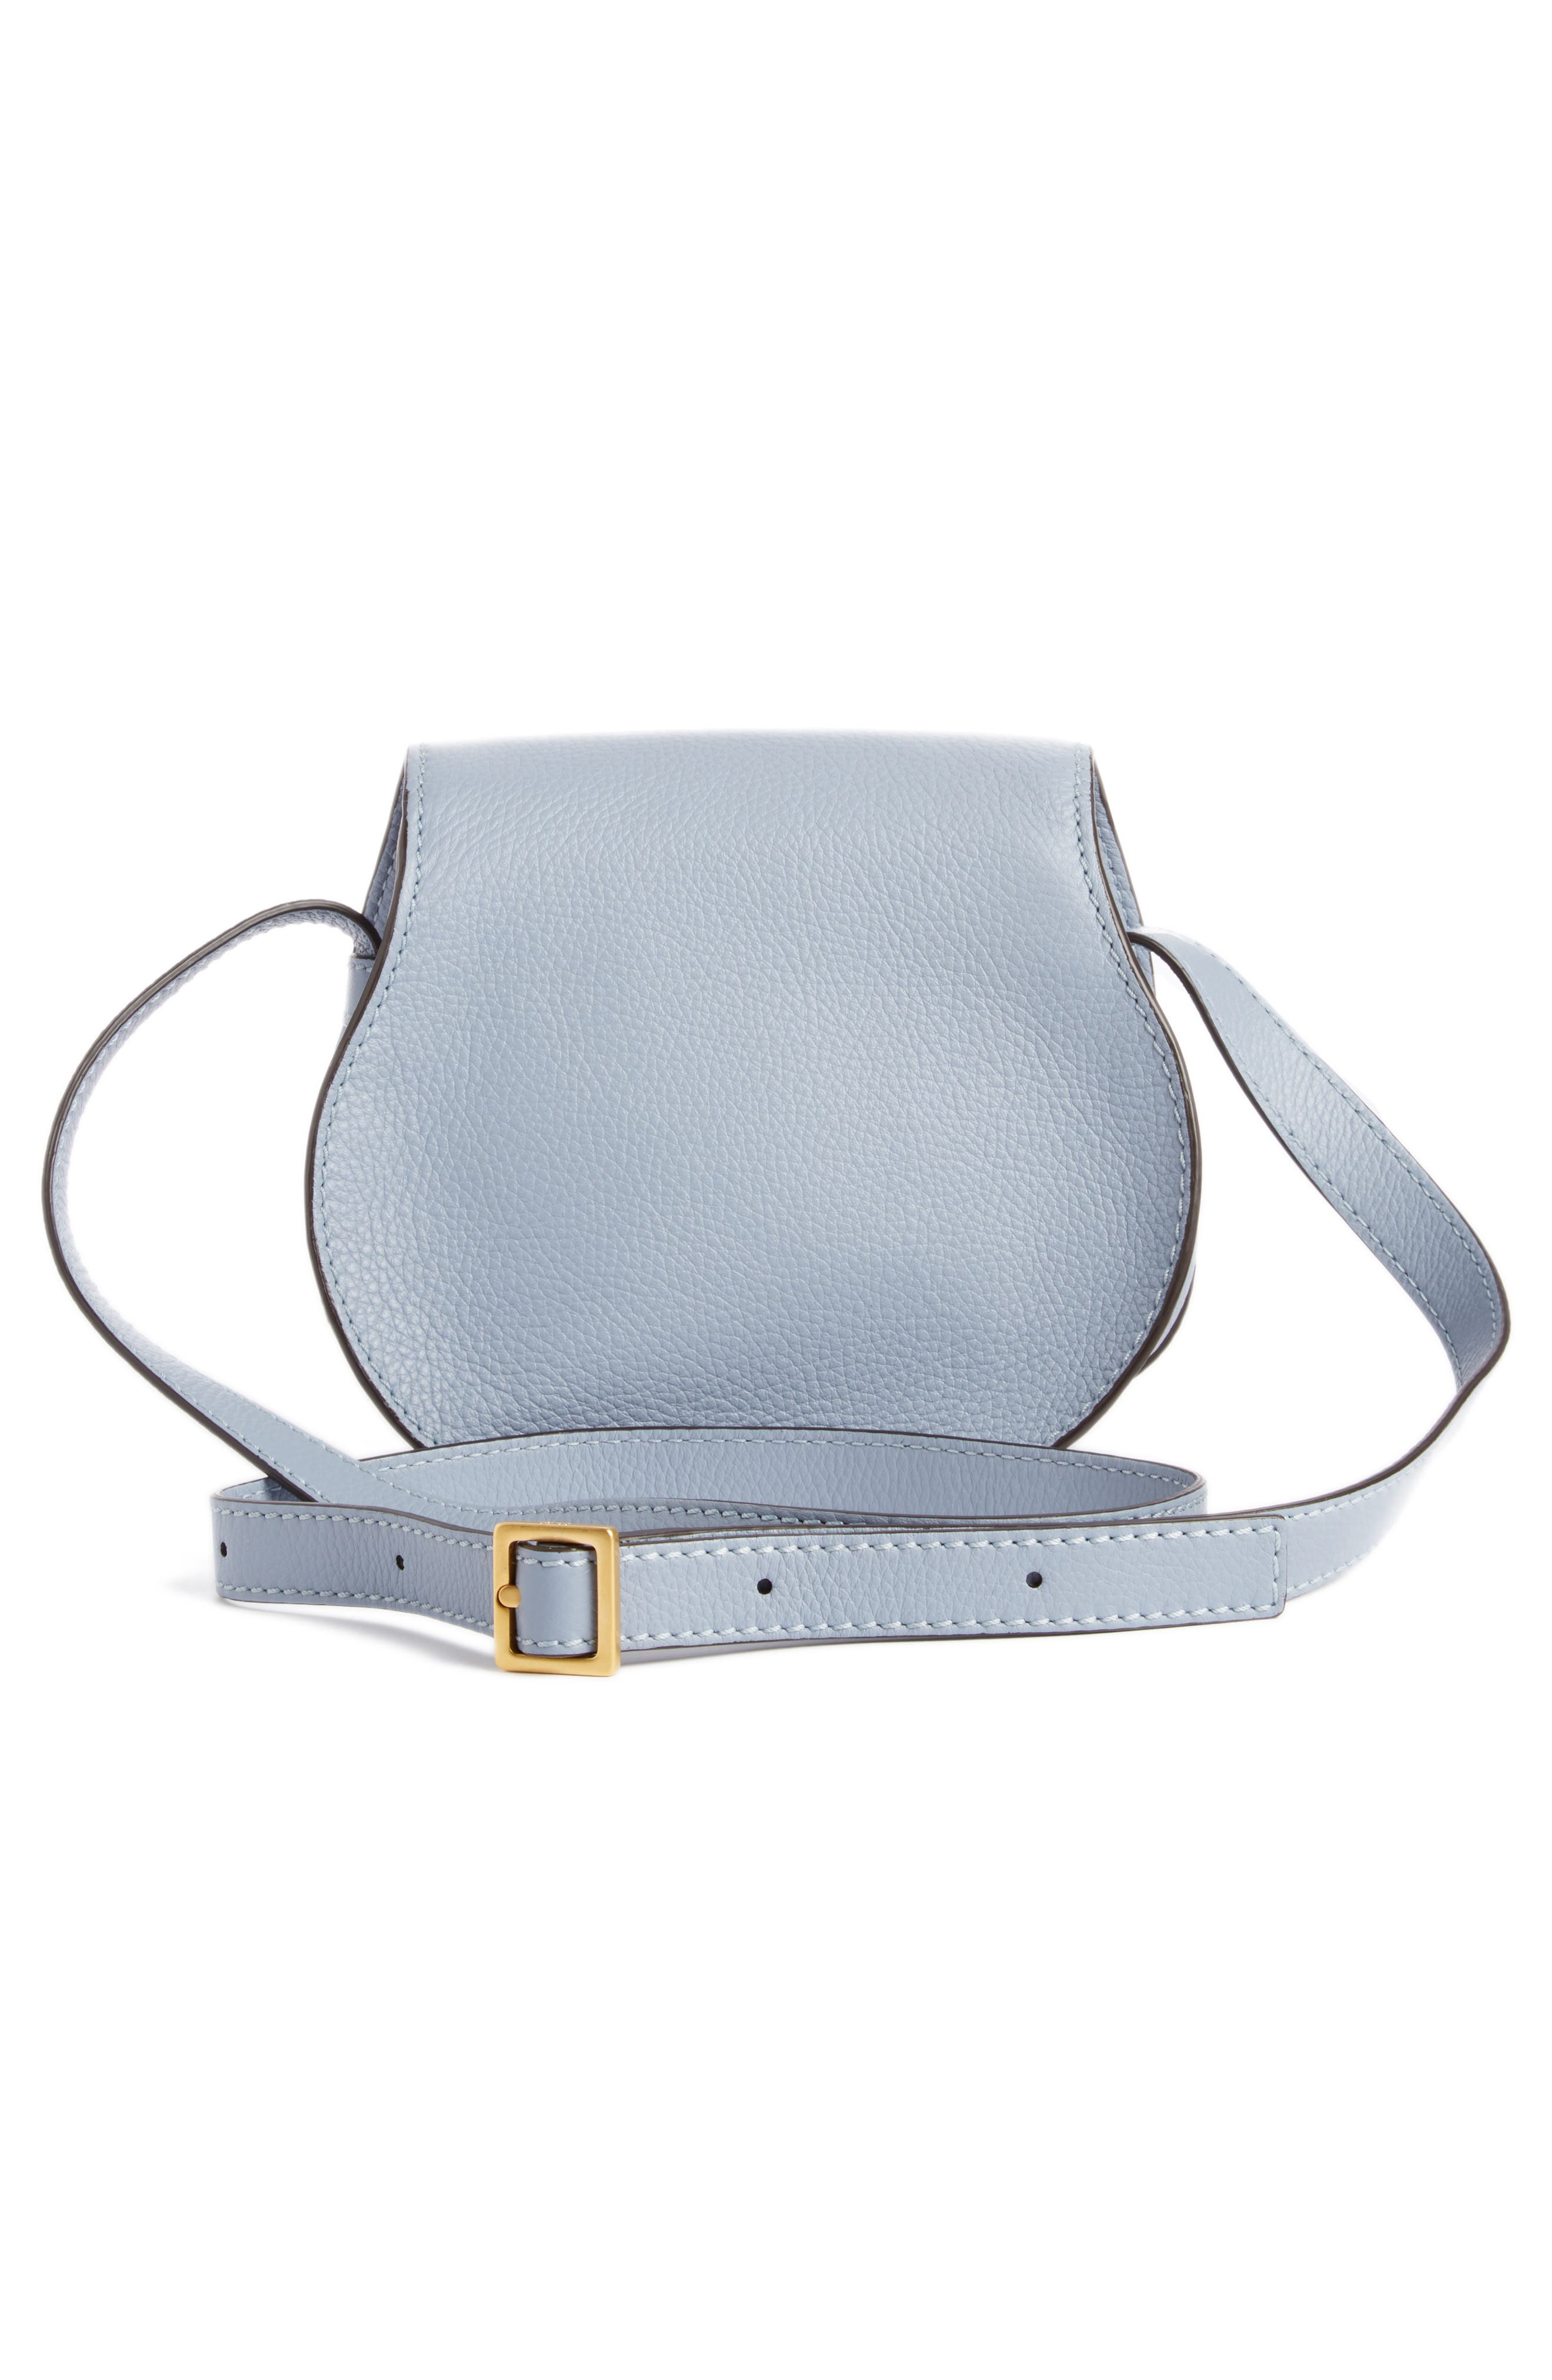 'Mini Marcie' Leather Crossbody Bag,                             Alternate thumbnail 3, color,                             Washed Blue